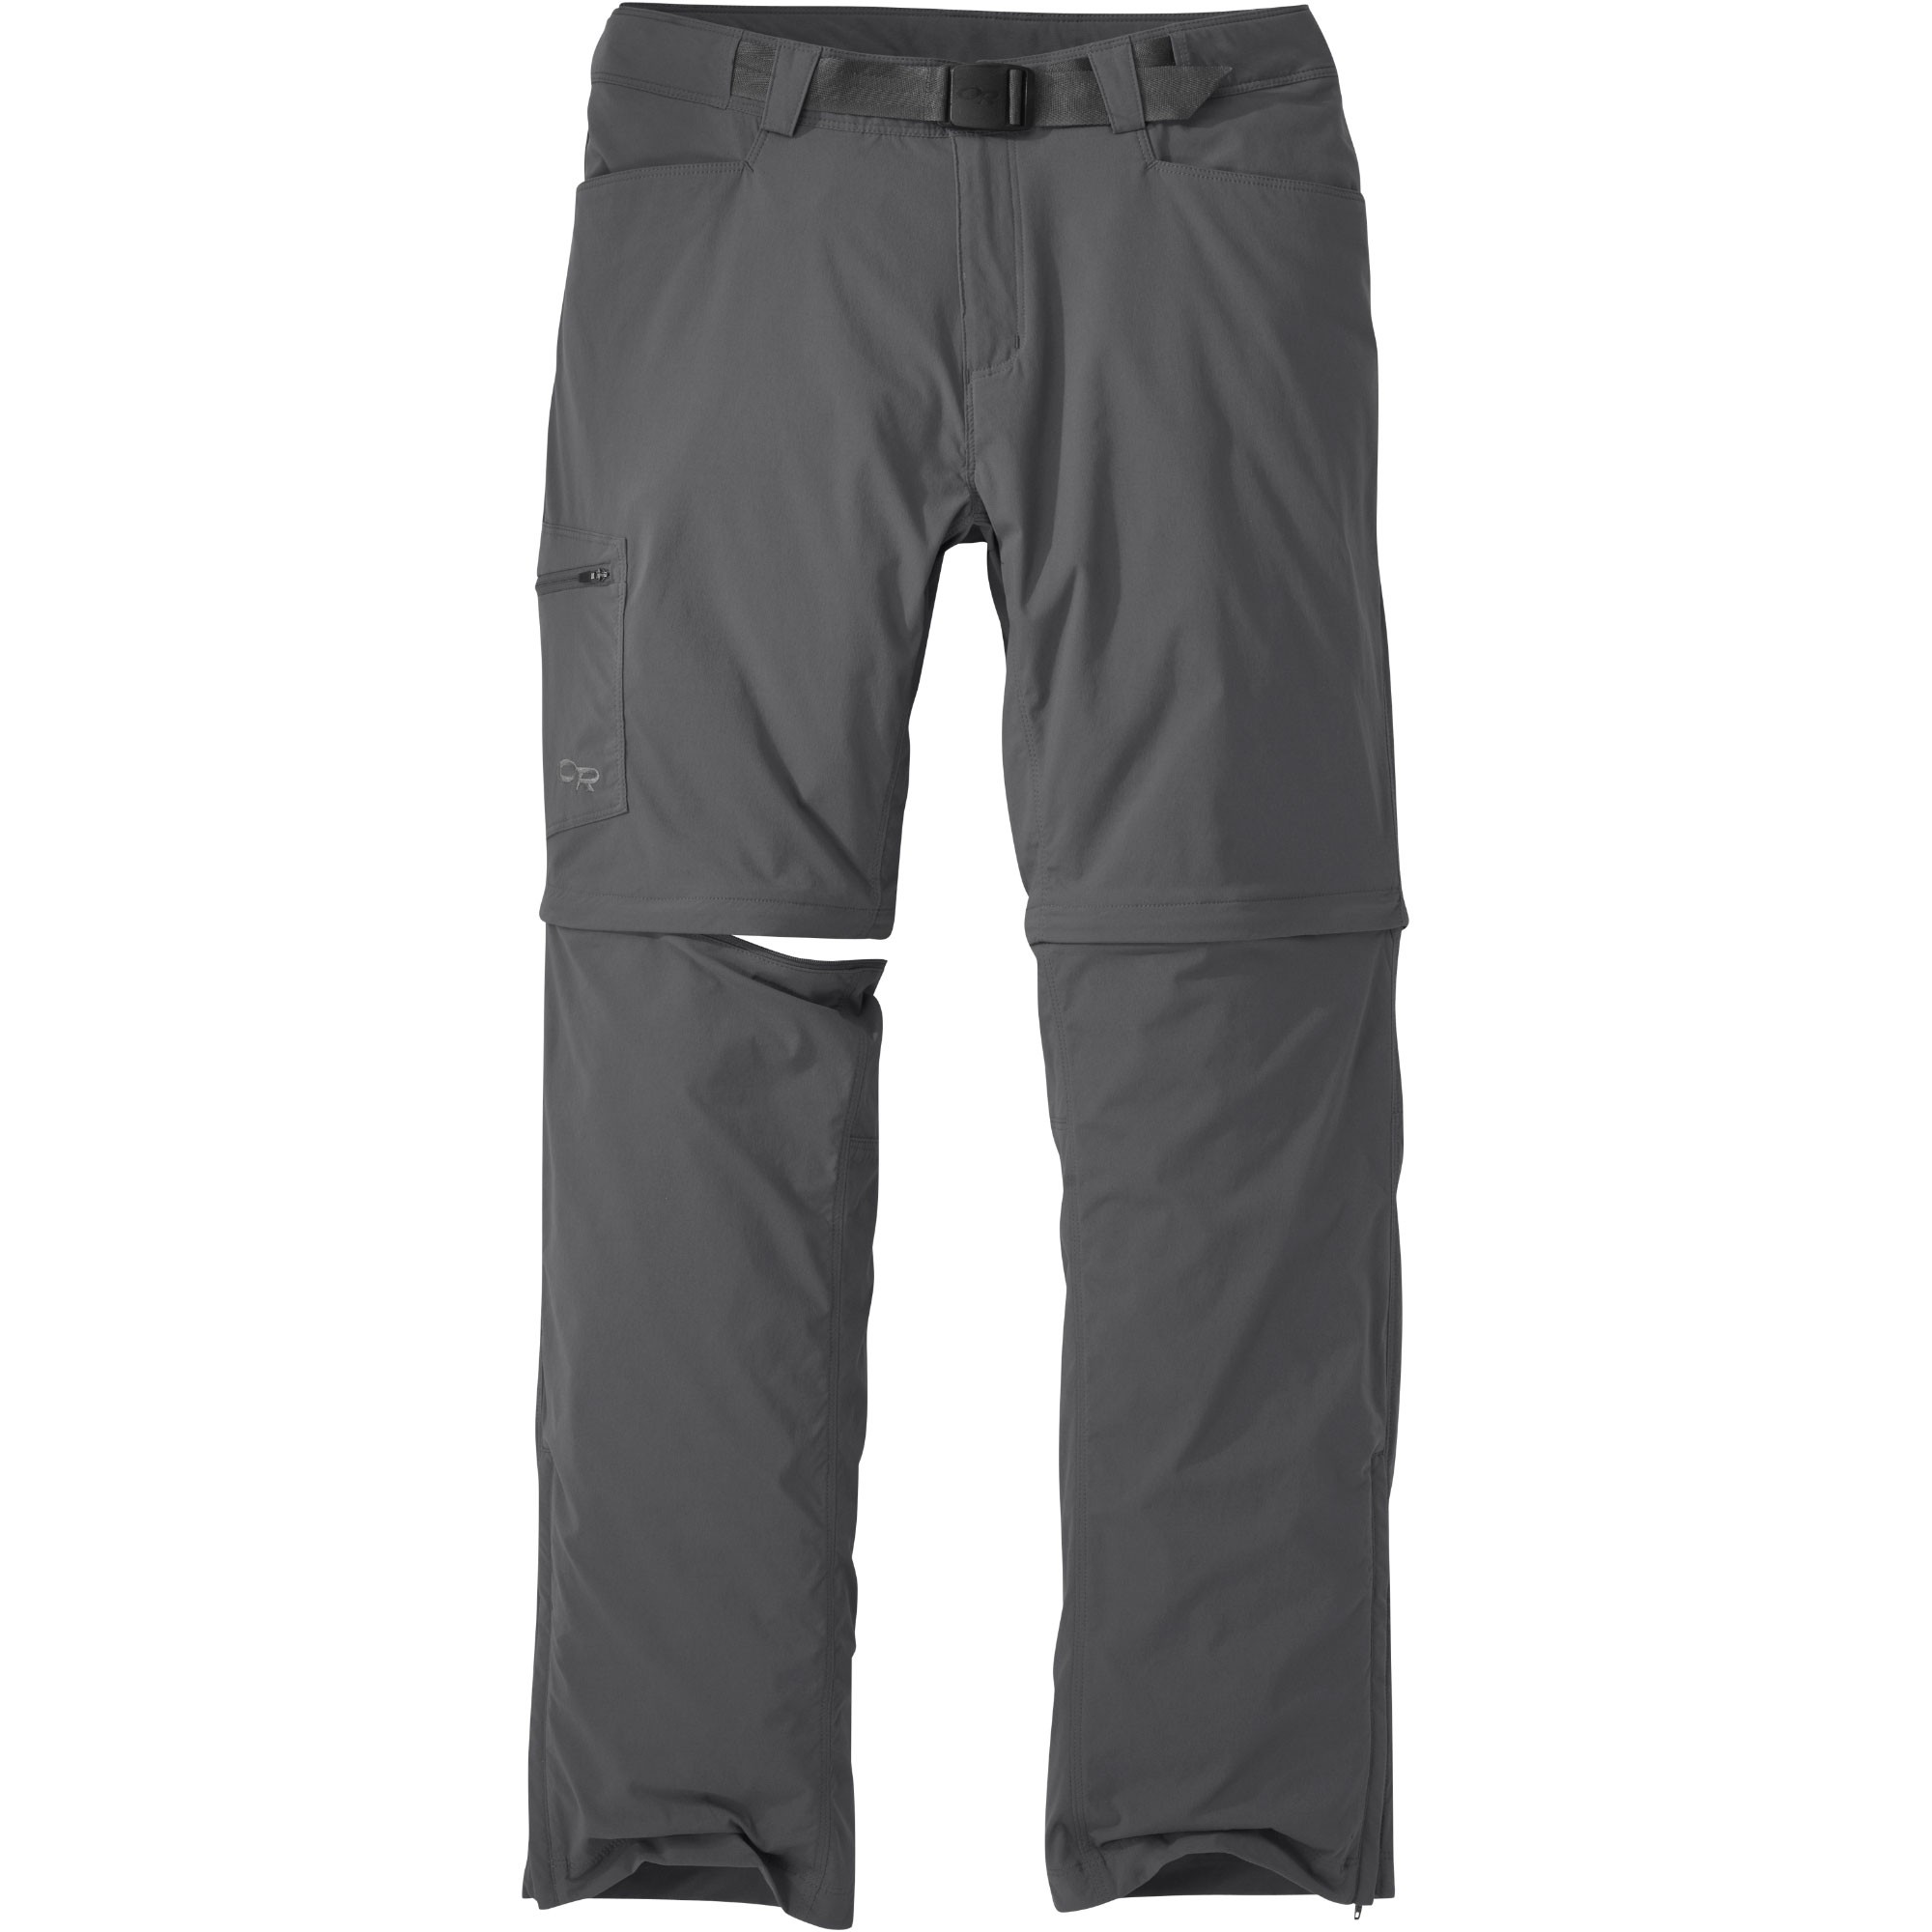 Outdoor Research Equinox Convertible Pants - Charcoal